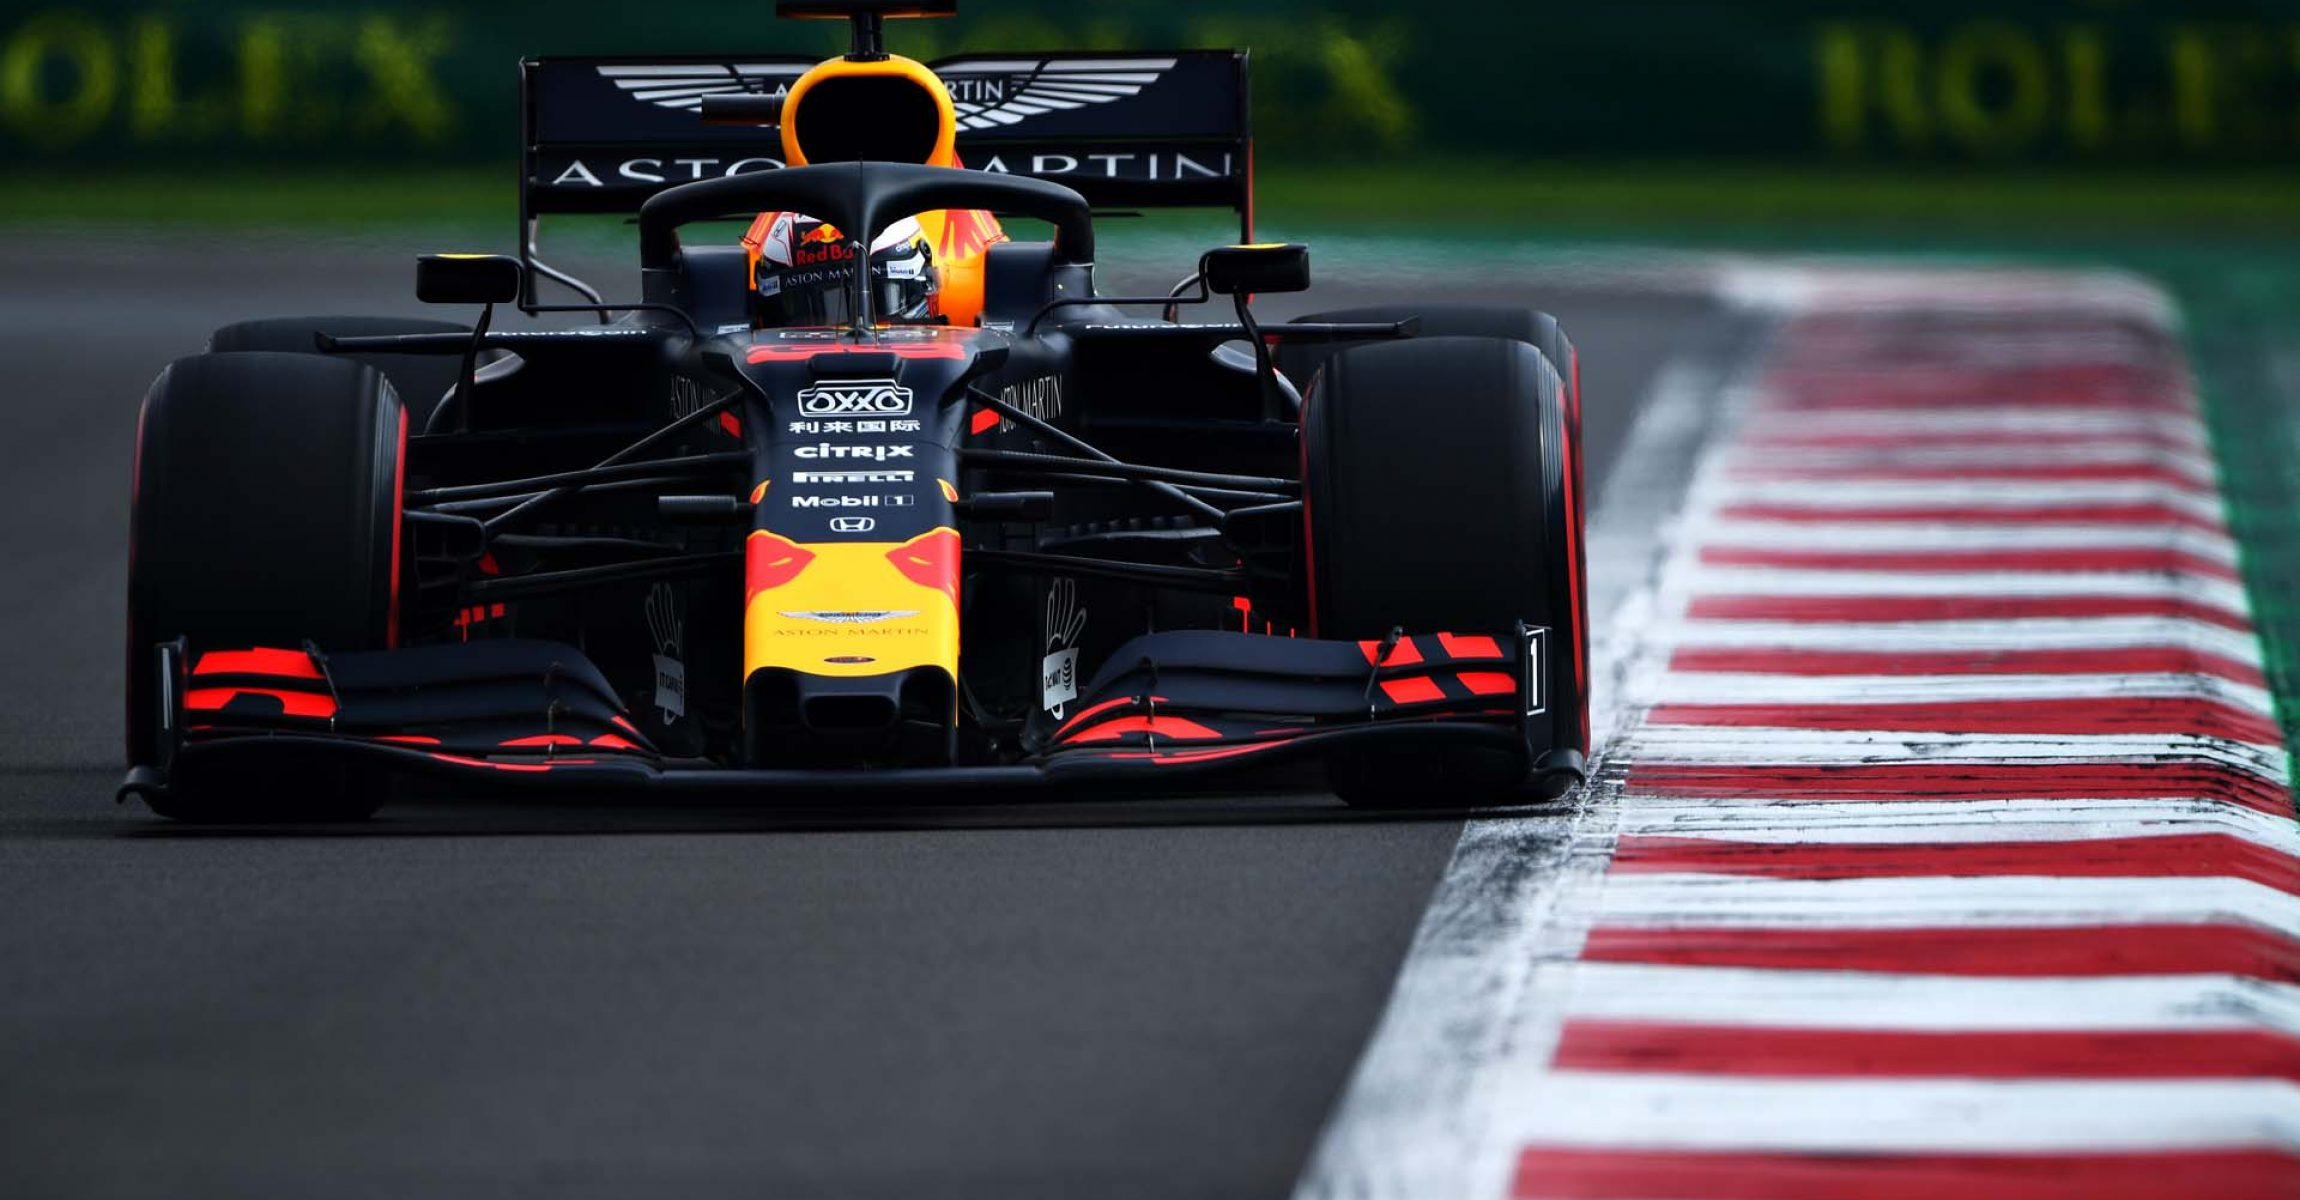 MEXICO CITY, MEXICO - OCTOBER 26: Max Verstappen of the Netherlands driving the (33) Aston Martin Red Bull Racing RB15 on track during final practice for the F1 Grand Prix of Mexico at Autodromo Hermanos Rodriguez on October 26, 2019 in Mexico City, Mexico. (Photo by Clive Mason/Getty Images) // Getty Images / Red Bull Content Pool  // AP-21ZACMSPS2111 // Usage for editorial use only //